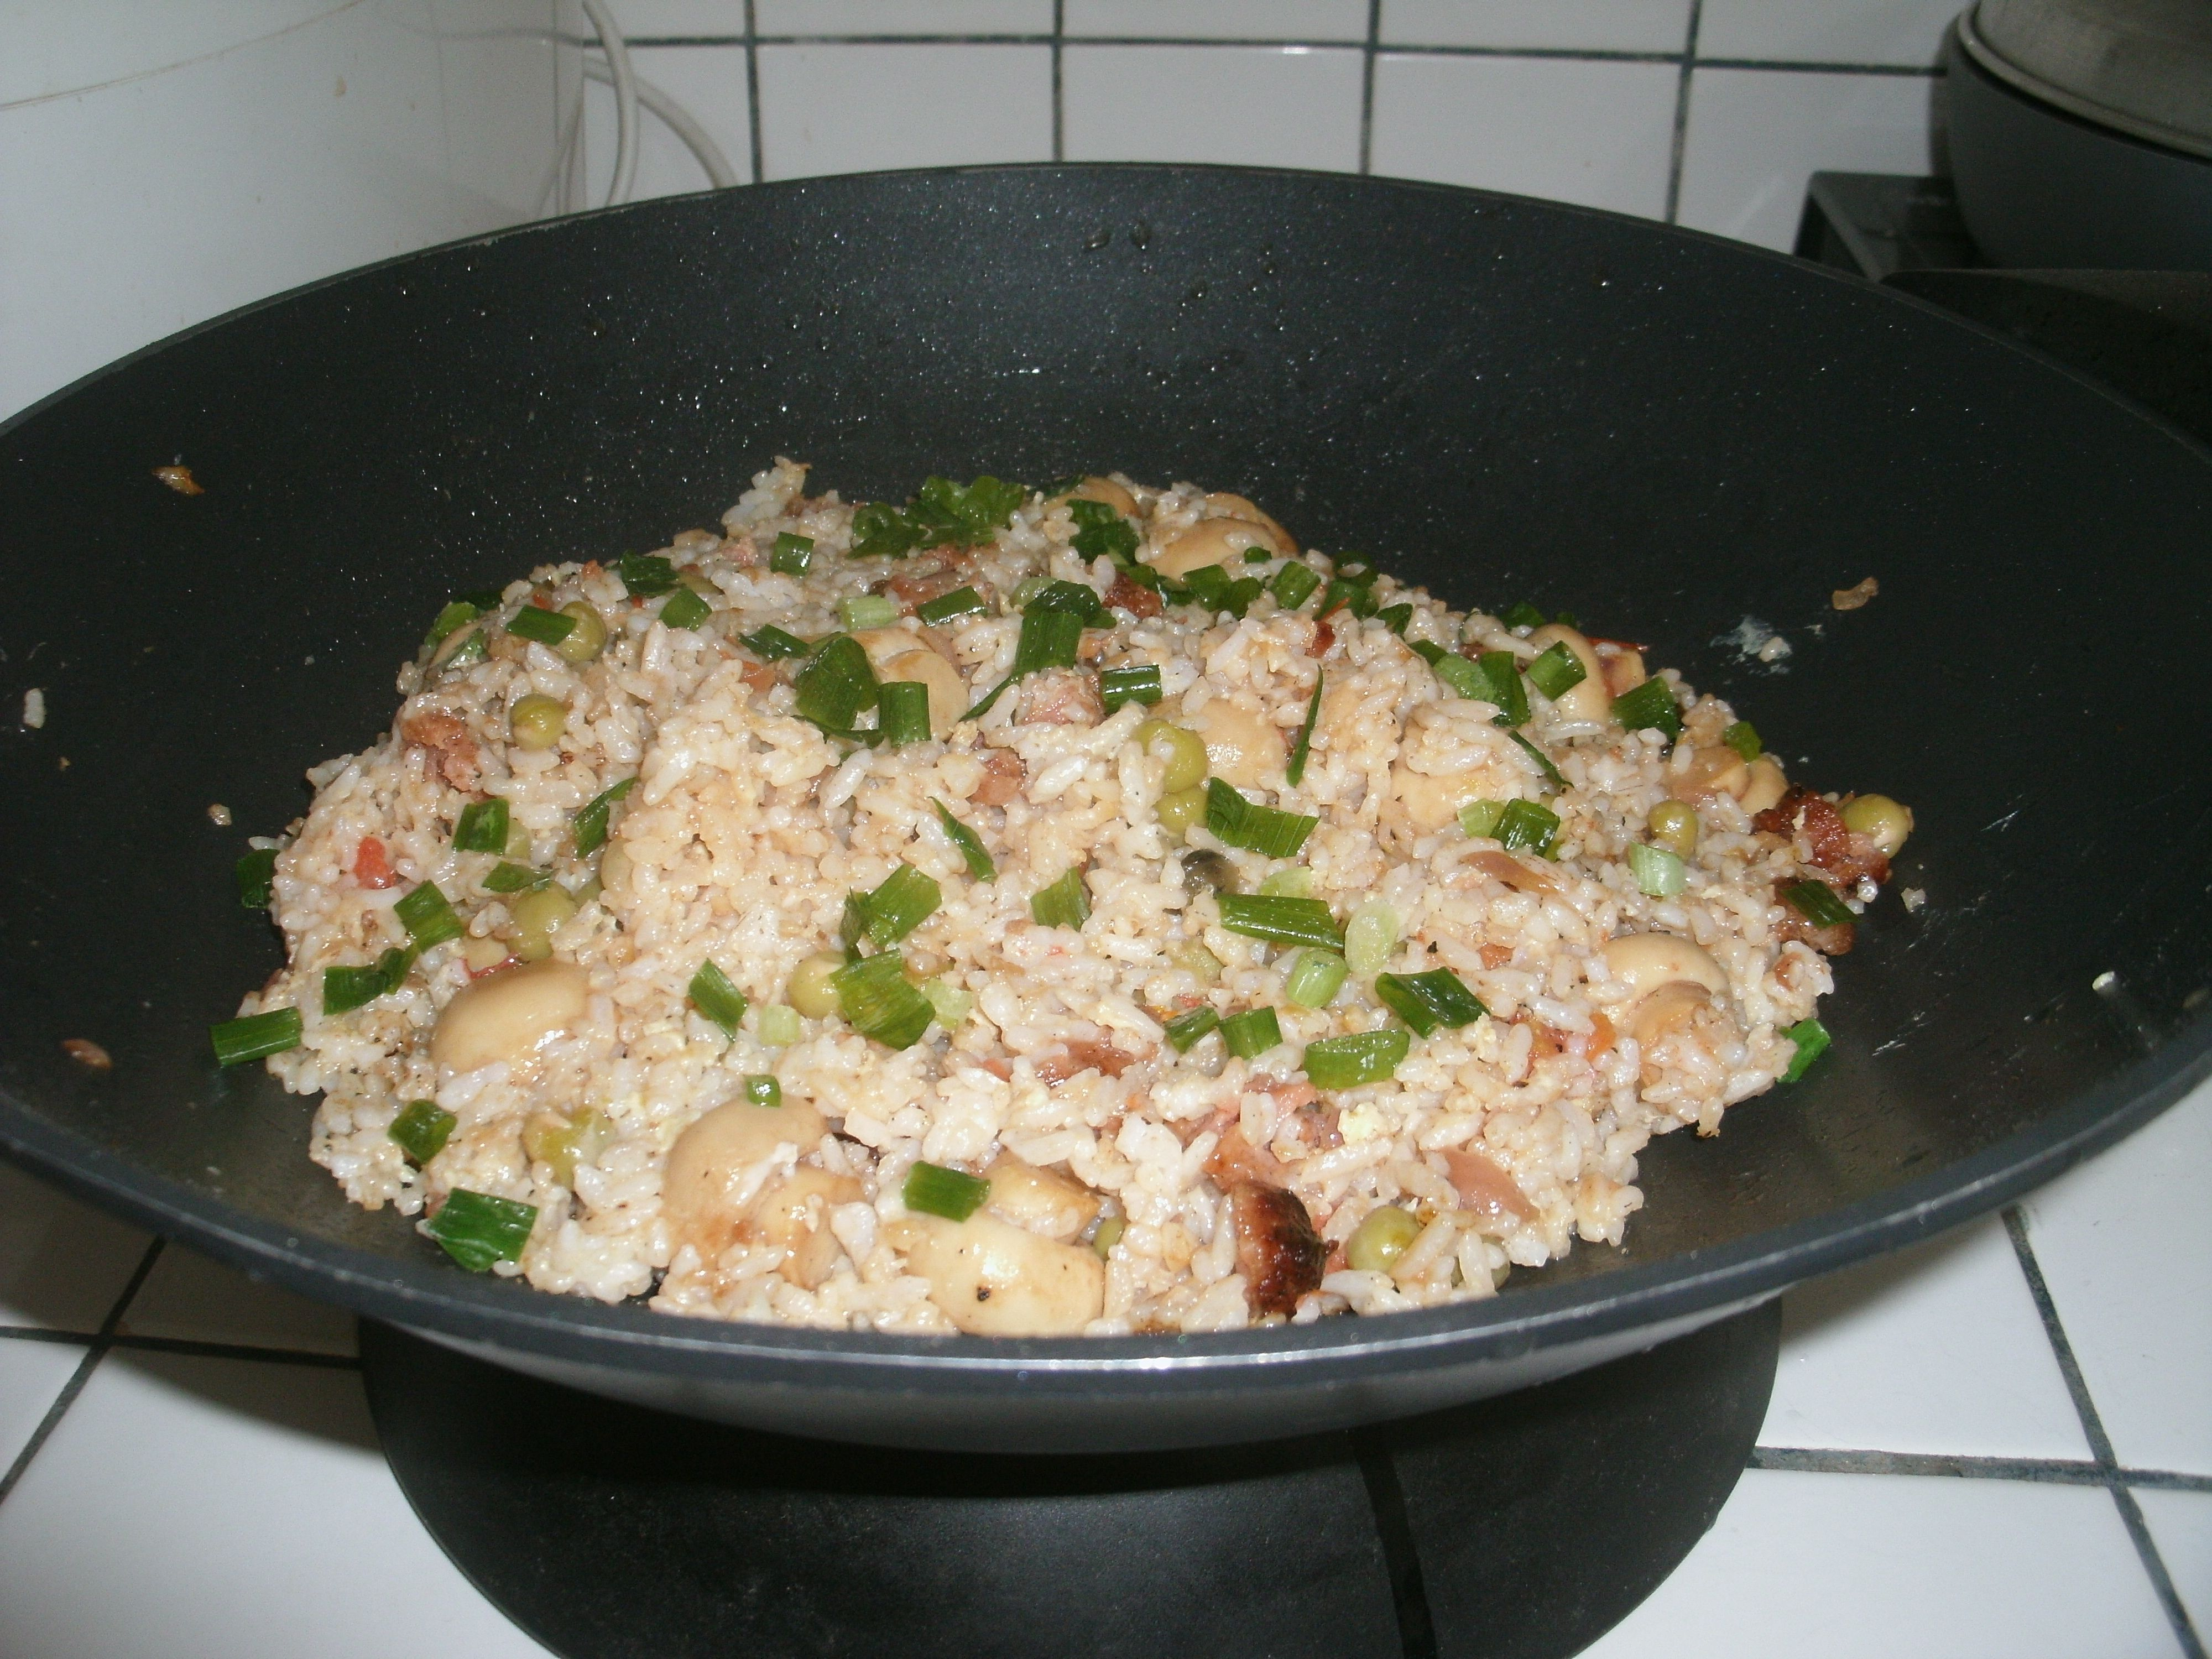 How to make fried rice from leftover rice leftover rice rice how to make fried rice from leftover rice ccuart Images